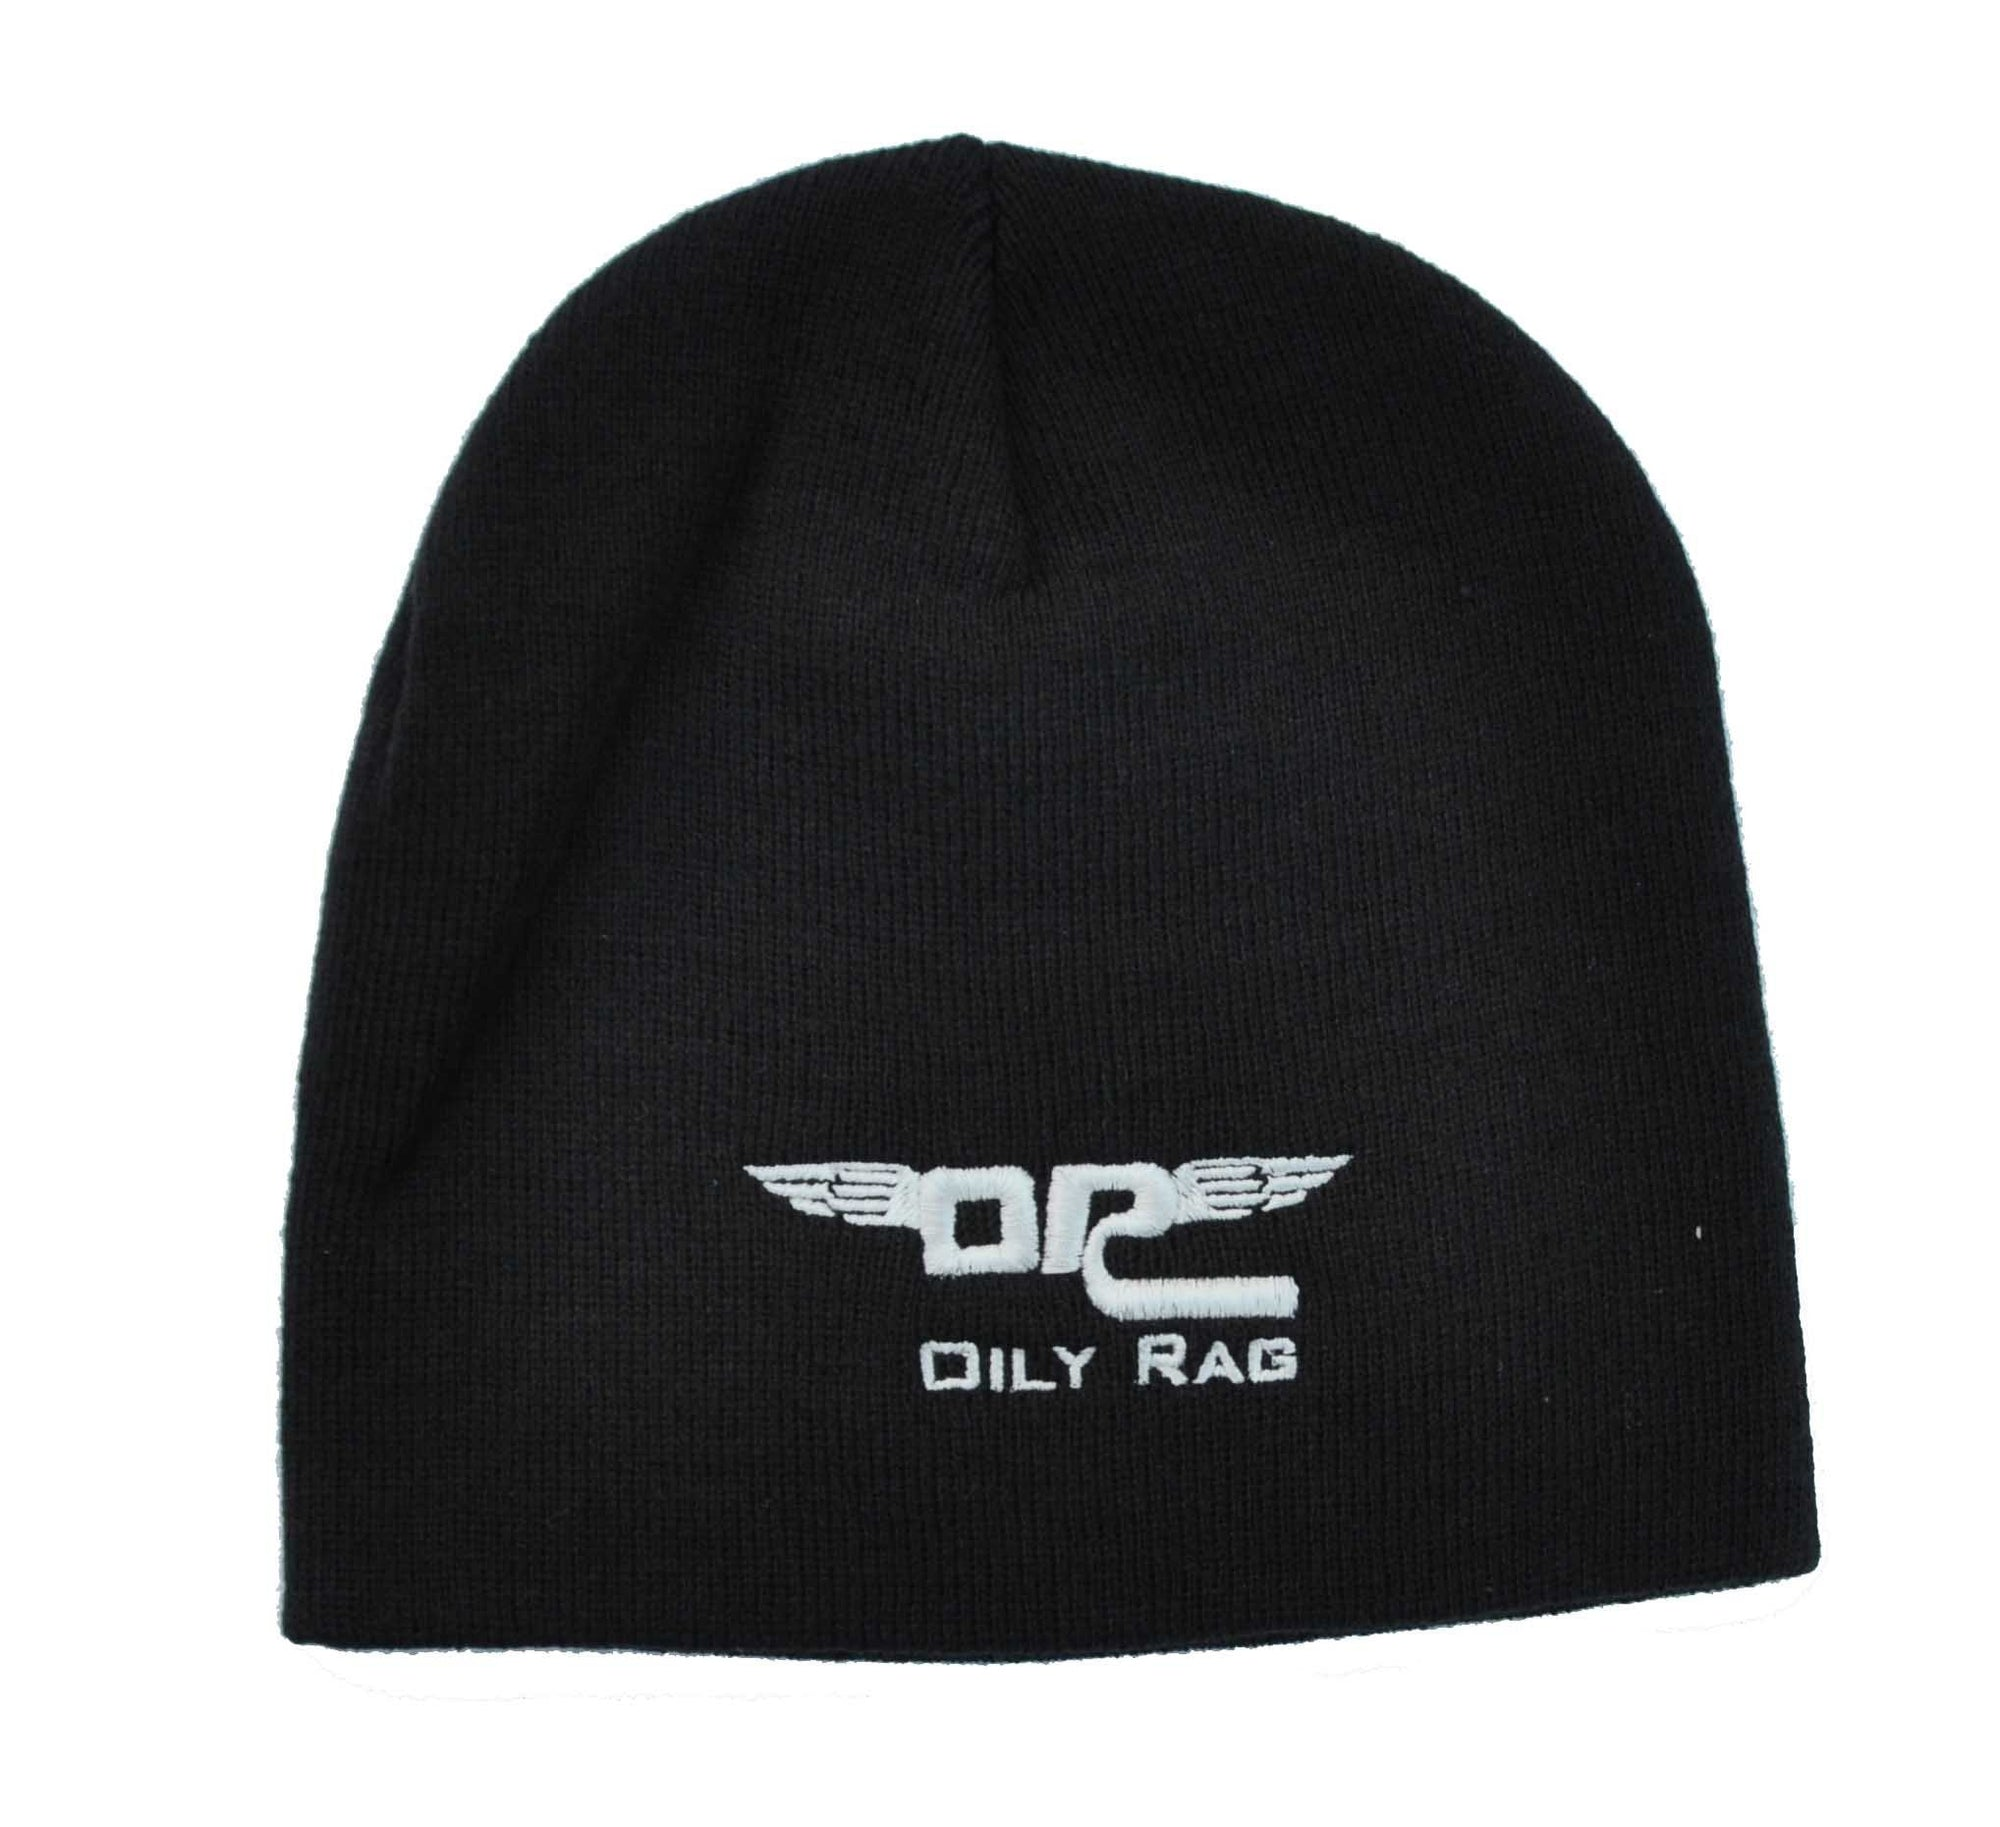 Oily Rag Clothing - Oily Rag Clothing Winged Beanie - Caps - Salt Flats Clothing